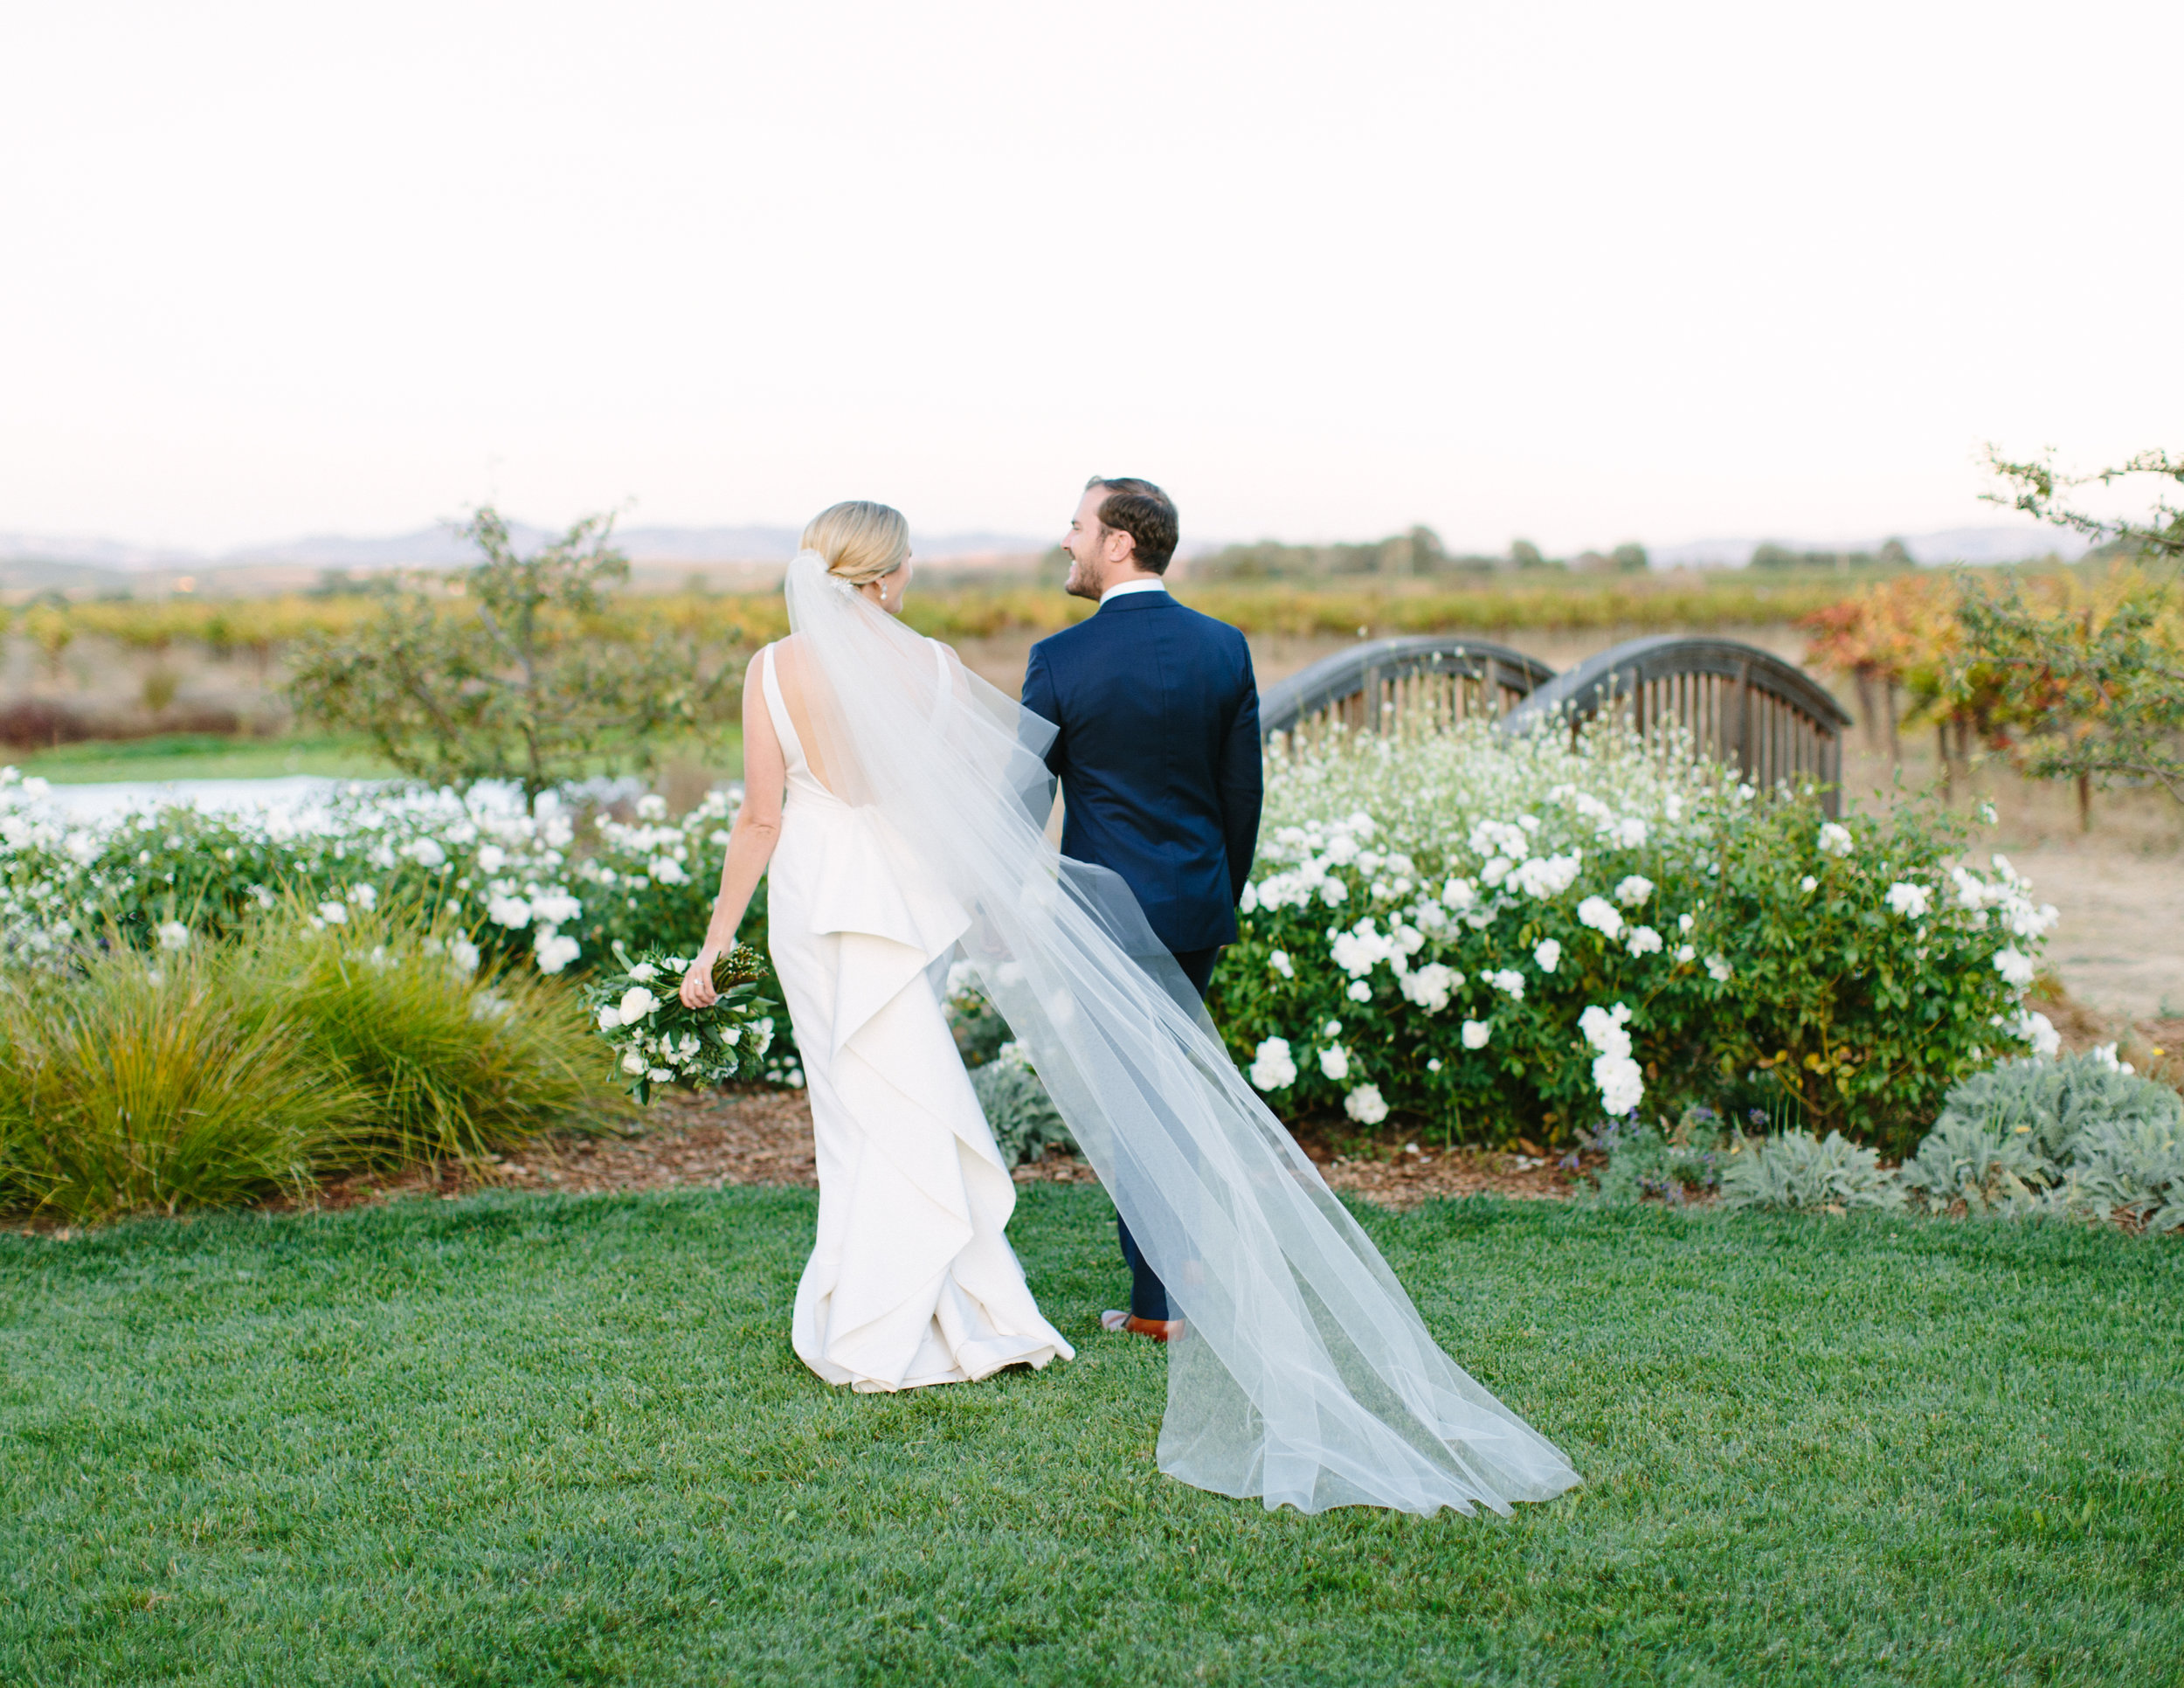 sonoma modern barn wedding 14.jpg